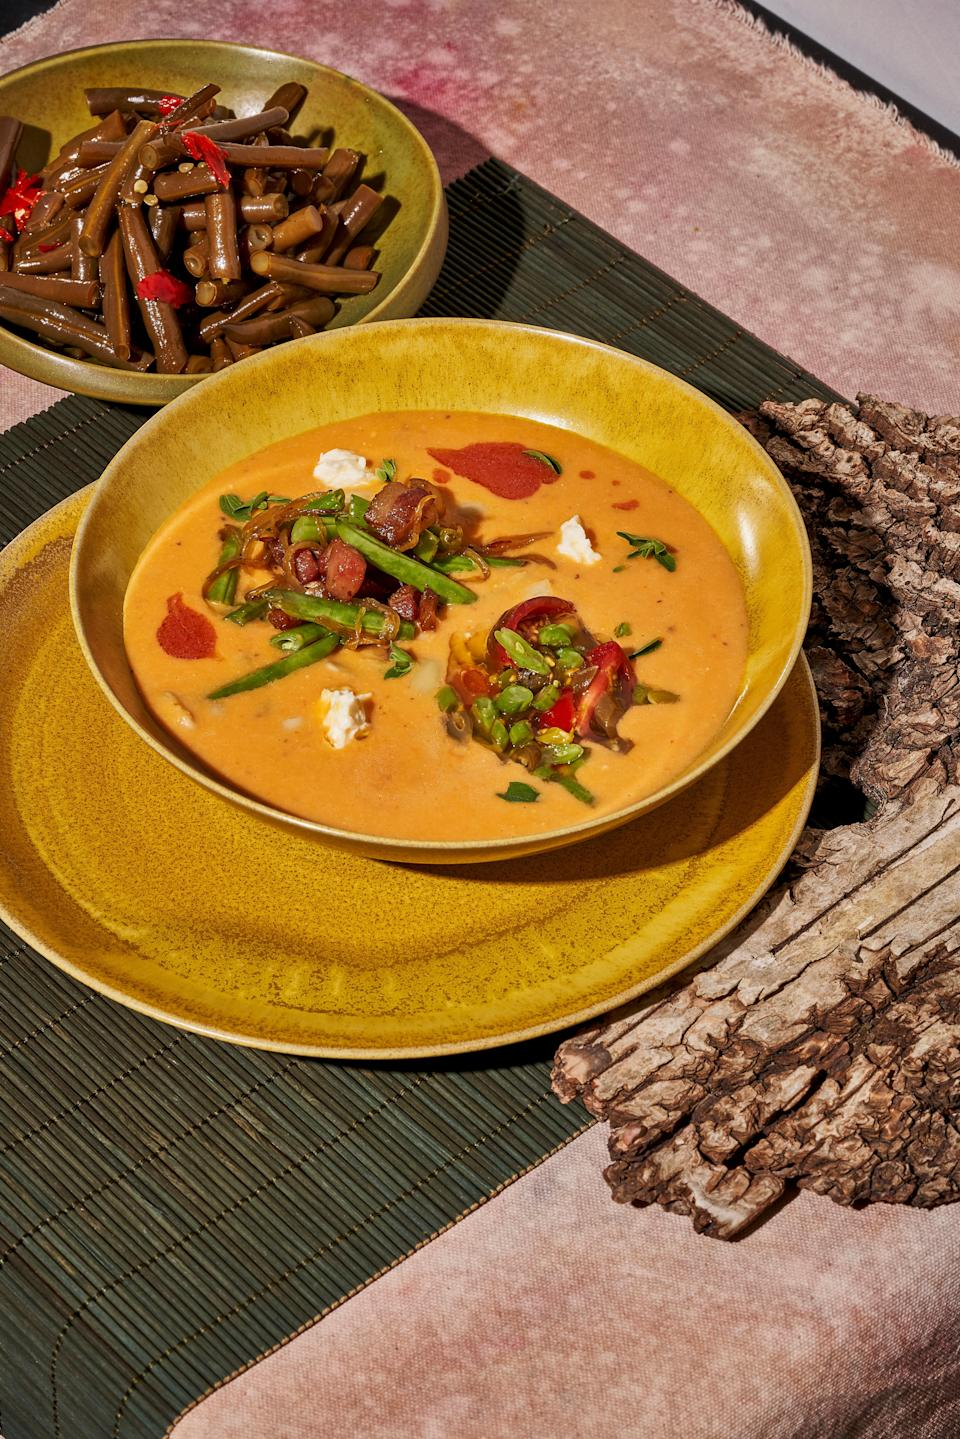 """A tangle of baked Romano beans and bacon (plus feta and a crisp pickled green bean salad) add a textural flourish to this warming puréed white bean and tomato soup. One recommendation: don't even think about skipping the <a href=""""https://www.epicurious.com/ingredients/tomato-brown-butter-peak-tomatoes-year-round-article?mbid=synd_yahoo_rss"""" rel=""""nofollow noopener"""" target=""""_blank"""" data-ylk=""""slk:tomato brown butter"""" class=""""link rapid-noclick-resp"""">tomato brown butter</a>. <a href=""""https://www.epicurious.com/recipes/food/views/summer-bean-soup-with-tomato-brown-butter-cortney-burns?mbid=synd_yahoo_rss"""" rel=""""nofollow noopener"""" target=""""_blank"""" data-ylk=""""slk:See recipe."""" class=""""link rapid-noclick-resp"""">See recipe.</a>"""